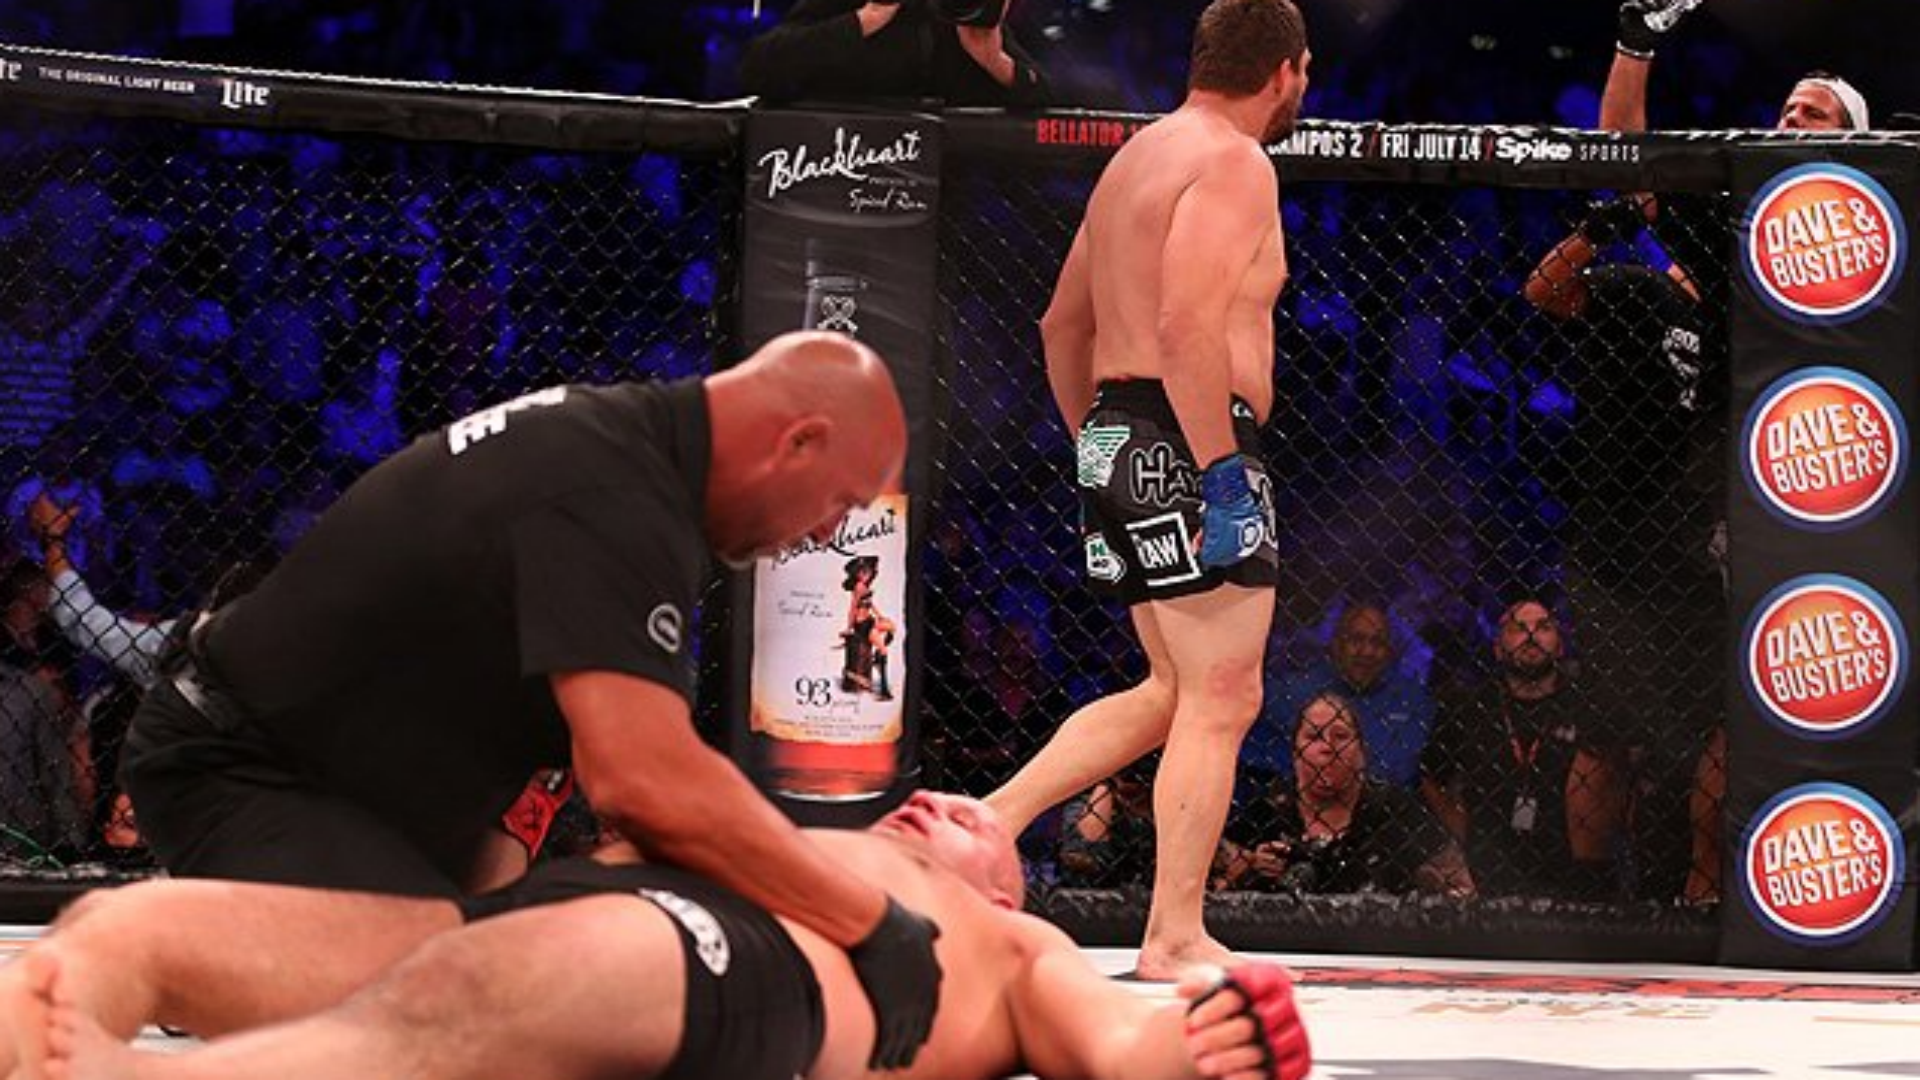 Bellator NYC results: Matt Mitrione KOs Fedor Emelianenko after insane double knockdown